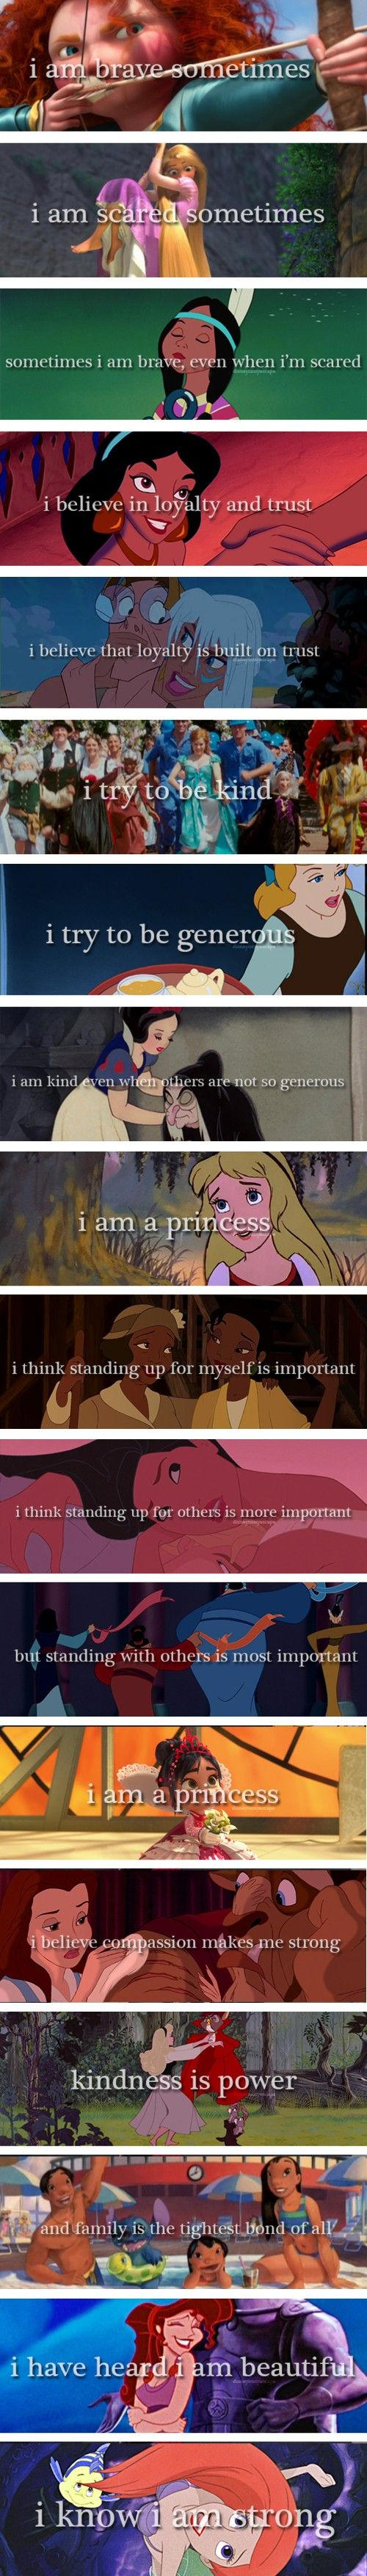 I am a Princess. Love this!!!!!